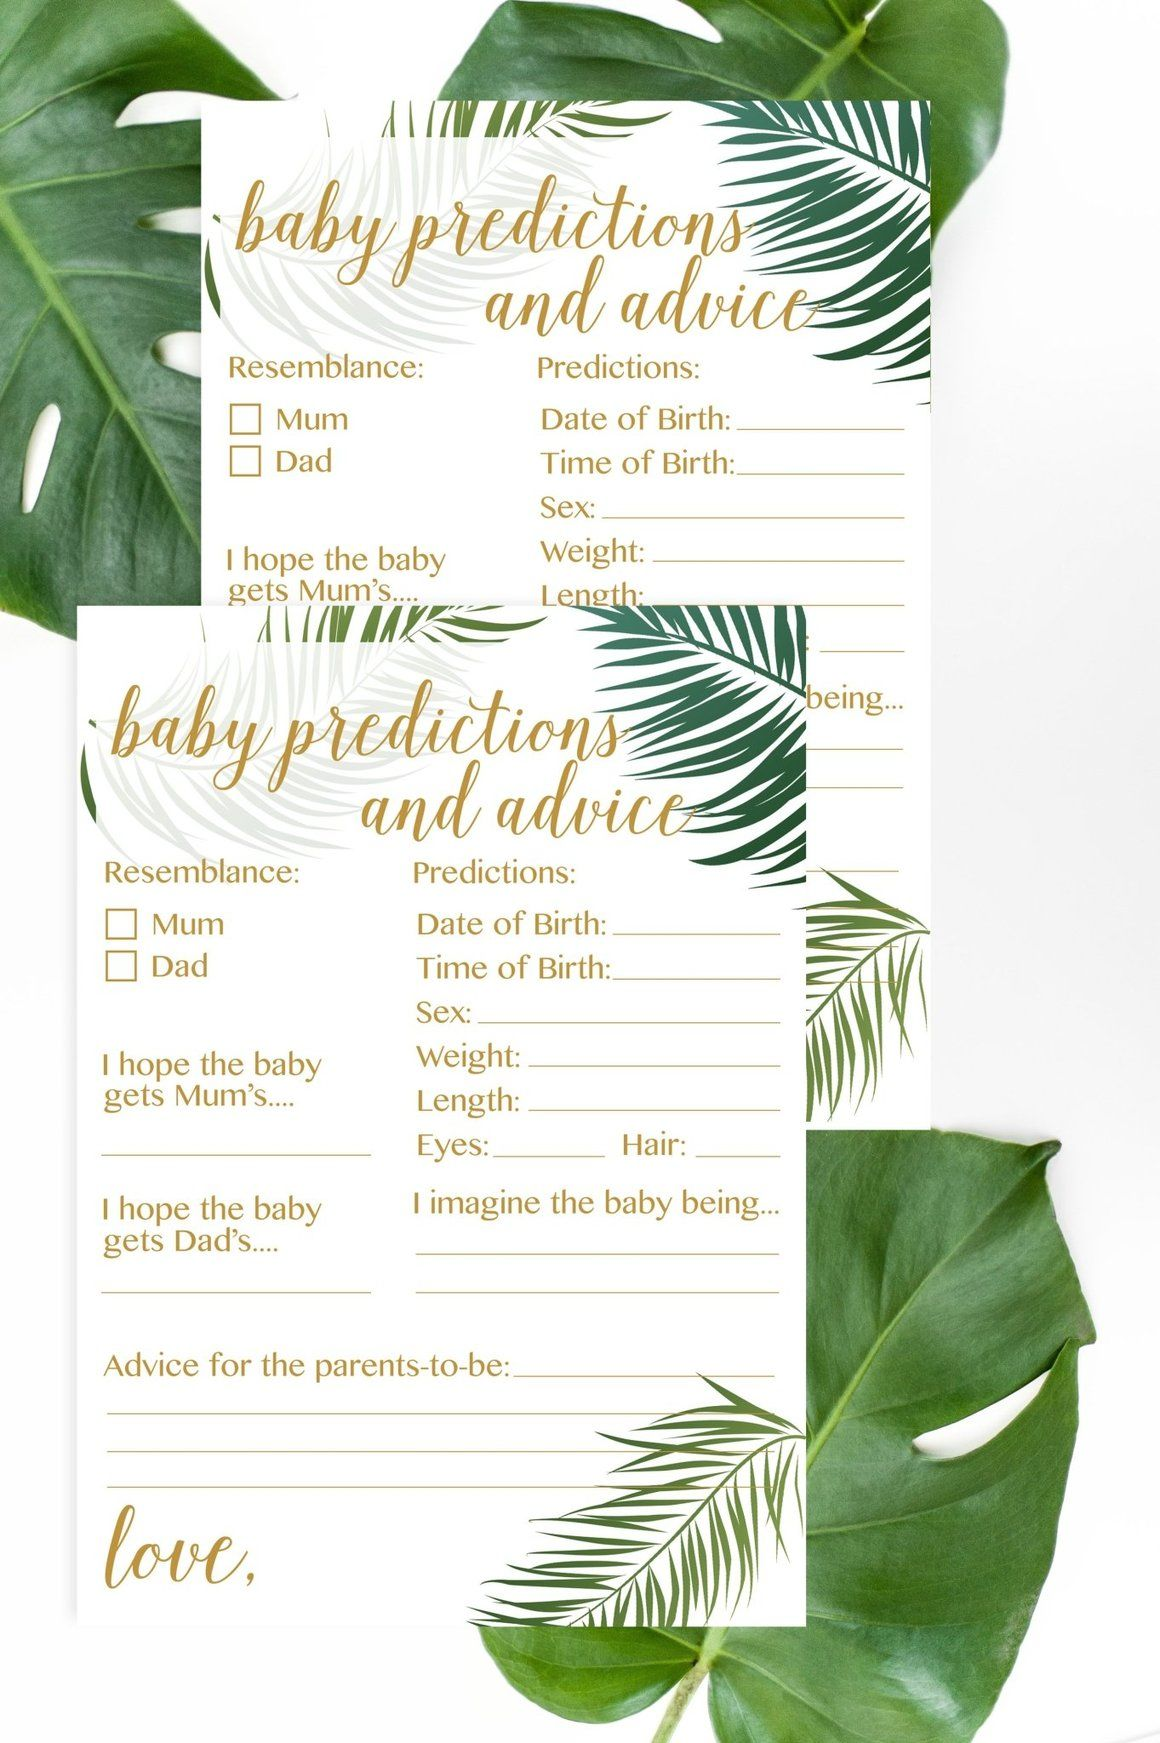 Baby predictions and advice mum version tropical